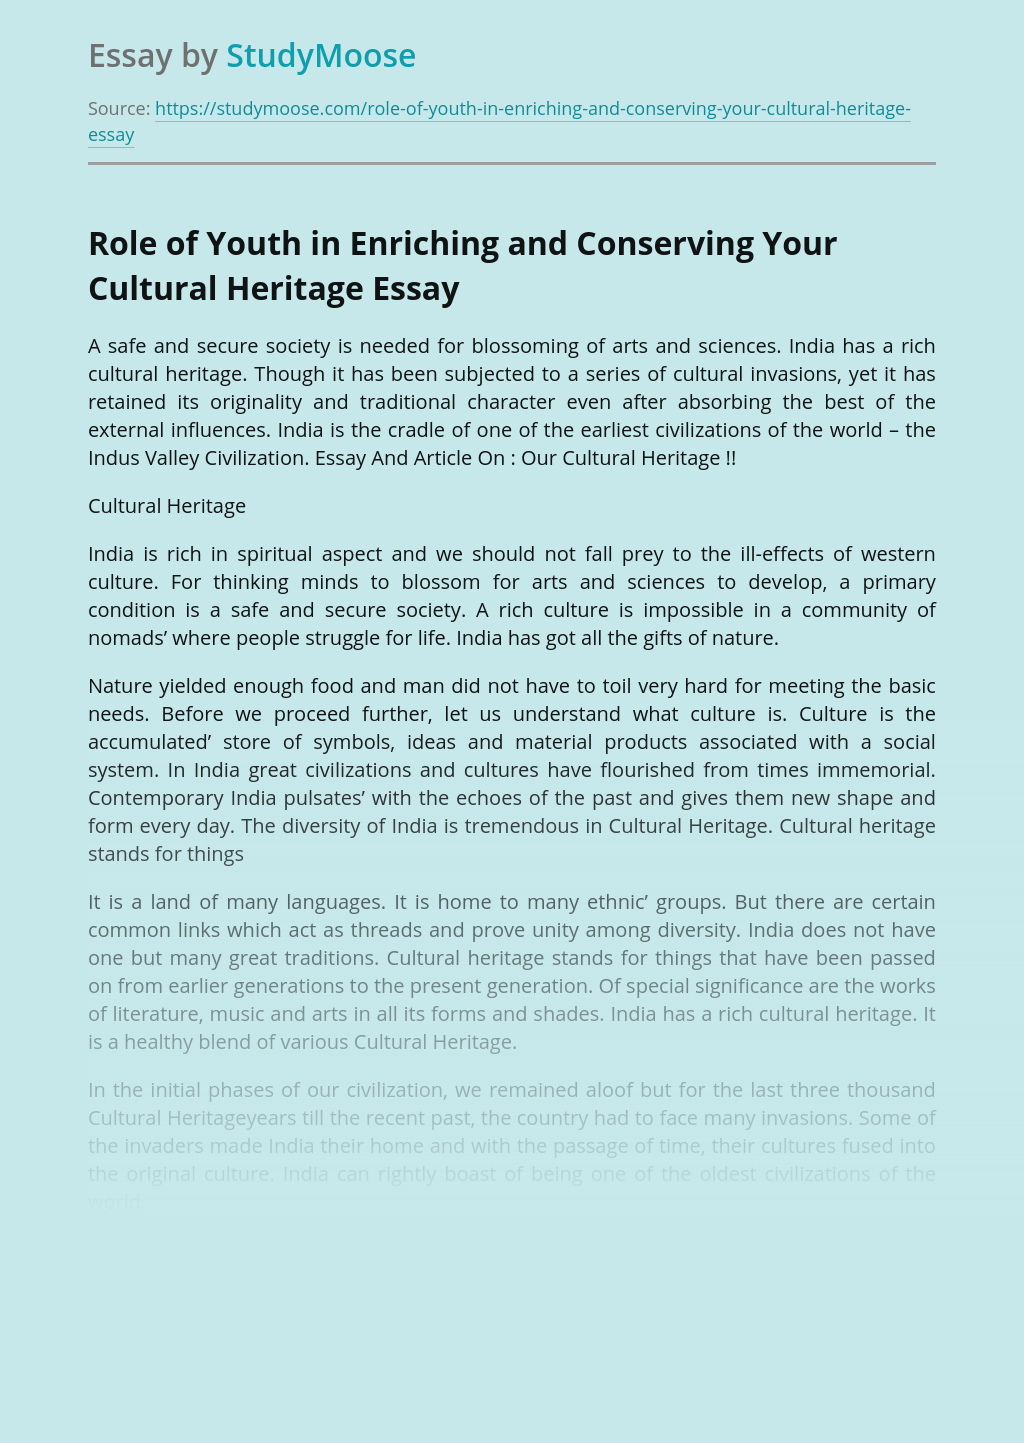 Role of Youth in Enriching and Conserving Your Cultural Heritage